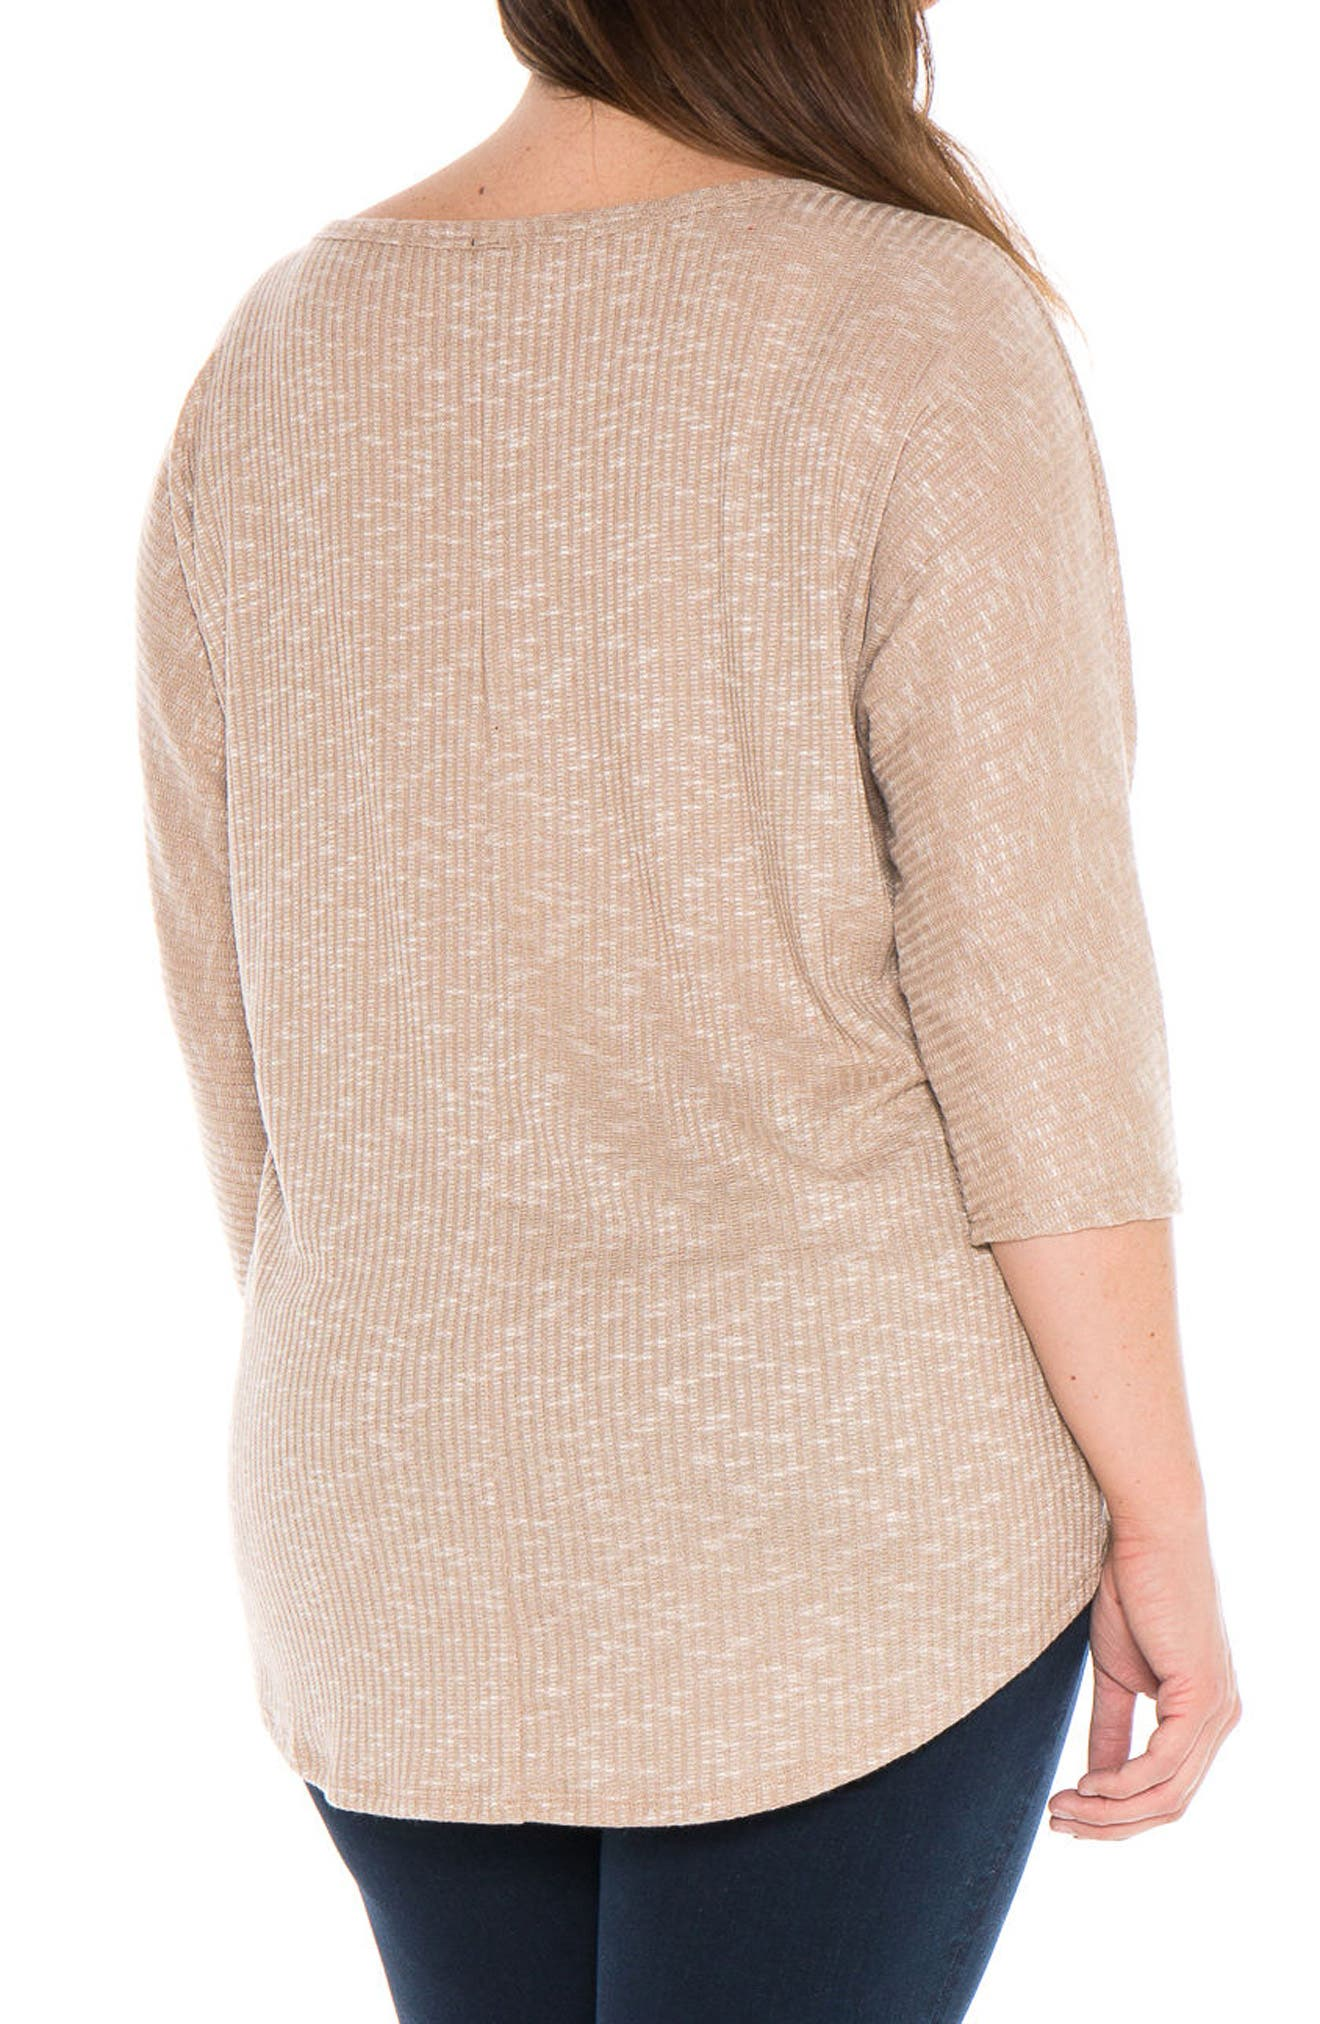 Alternate Image 2  - SLINK Jeans Marble Knit Dolman Top (Plus Size)